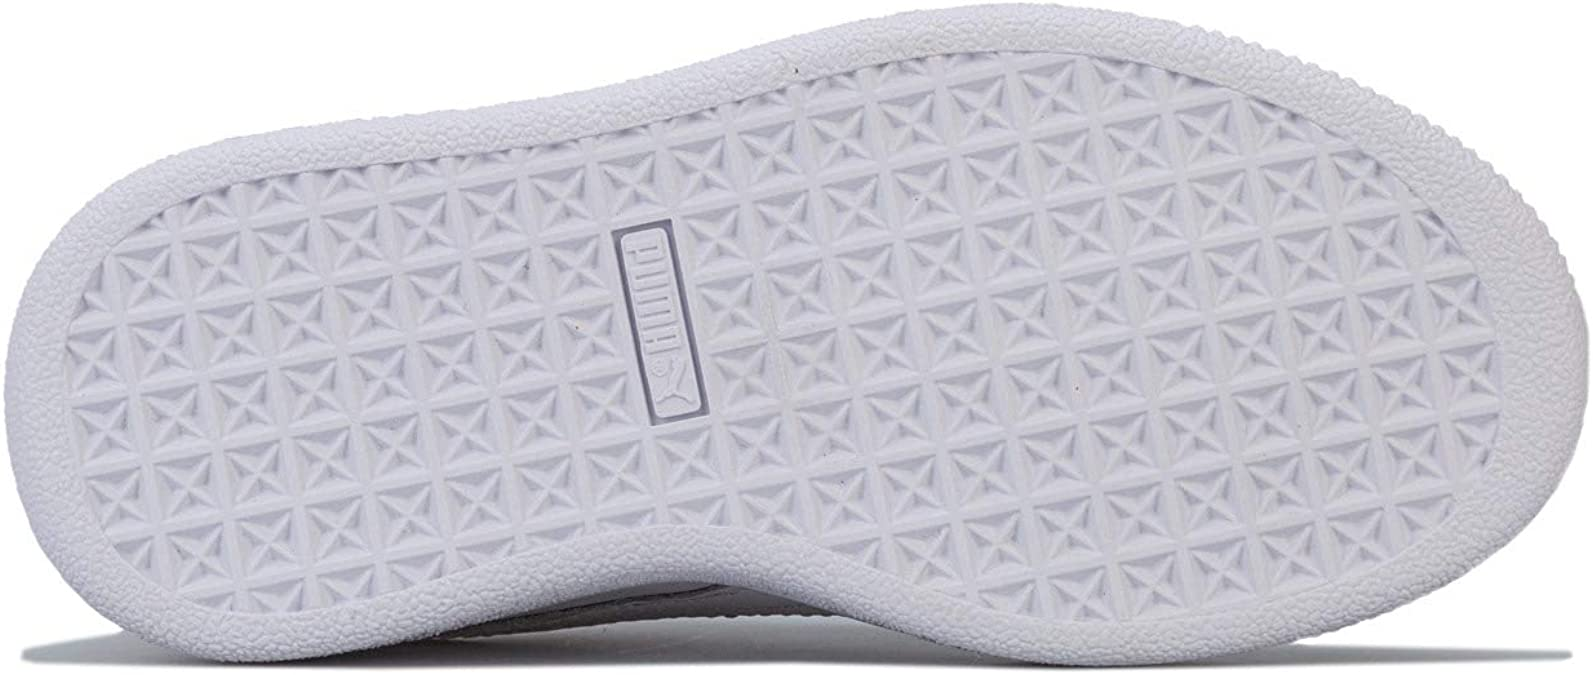 Children Girls Puma Basket Badge Trainers In White Cushioned Insole Padded